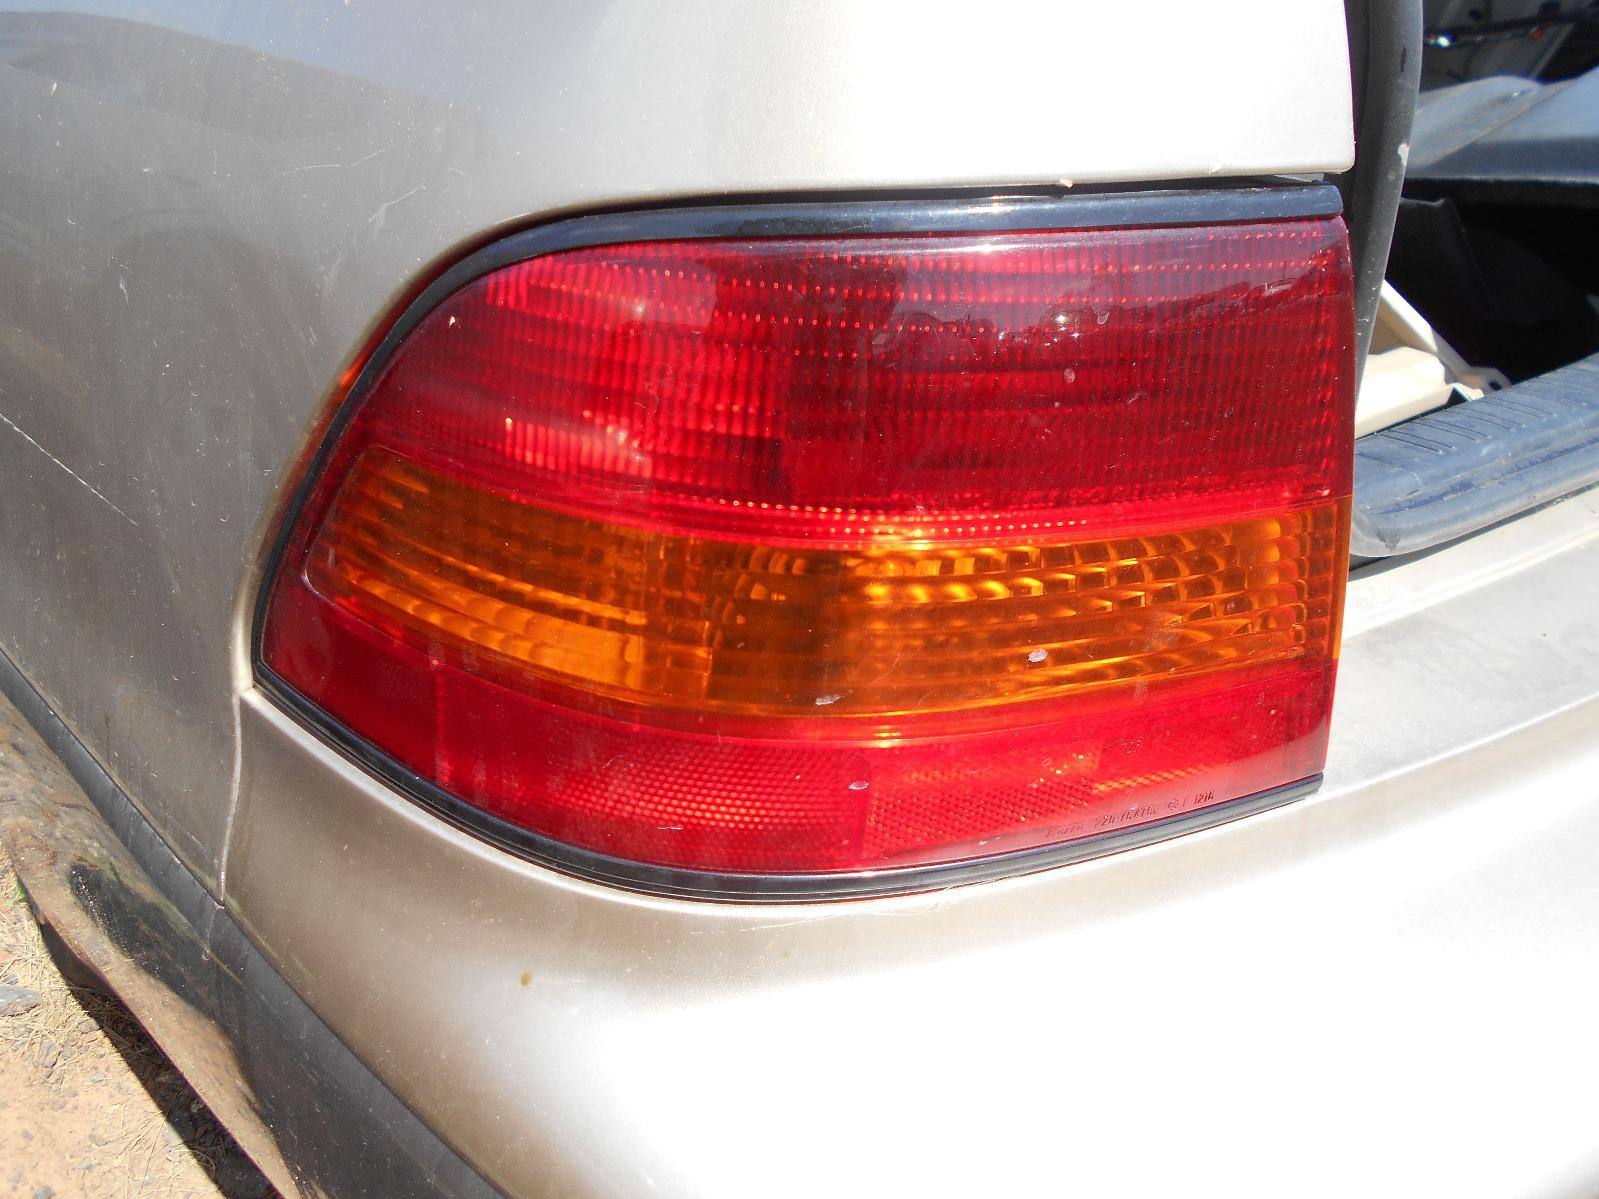 LEXUS ES300 (92-05), Left Taillight, MCV20, ORANGE FLASHER, LENS# 220-76476, 10/96-08/99